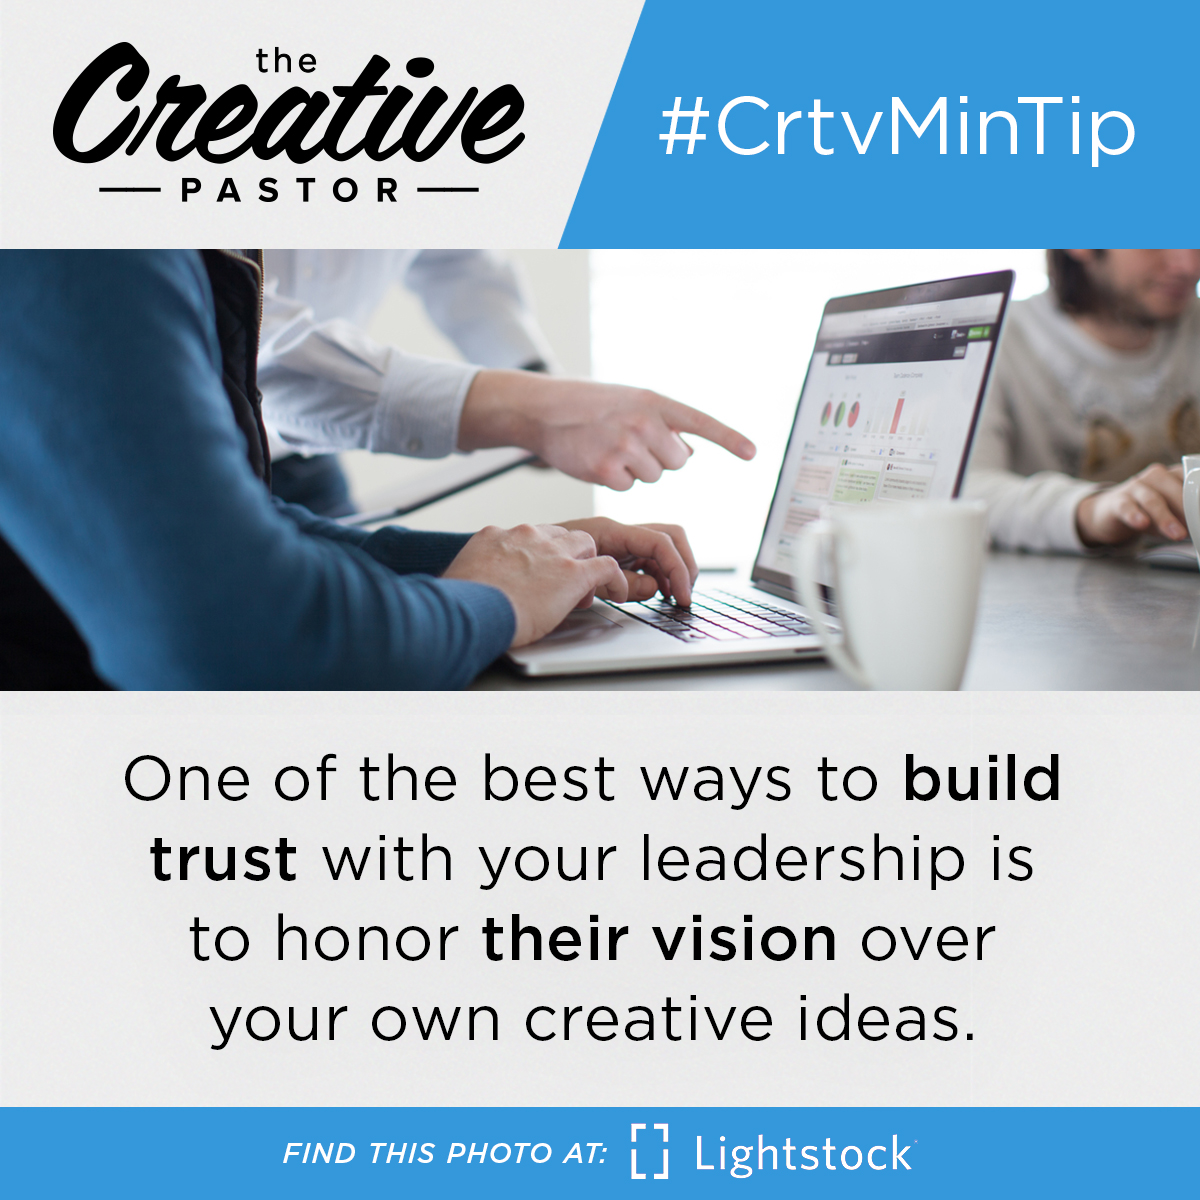 #CrtvMinTip: One of the best ways to build trust with your leadership is to honor their vision over your own creative ideas.